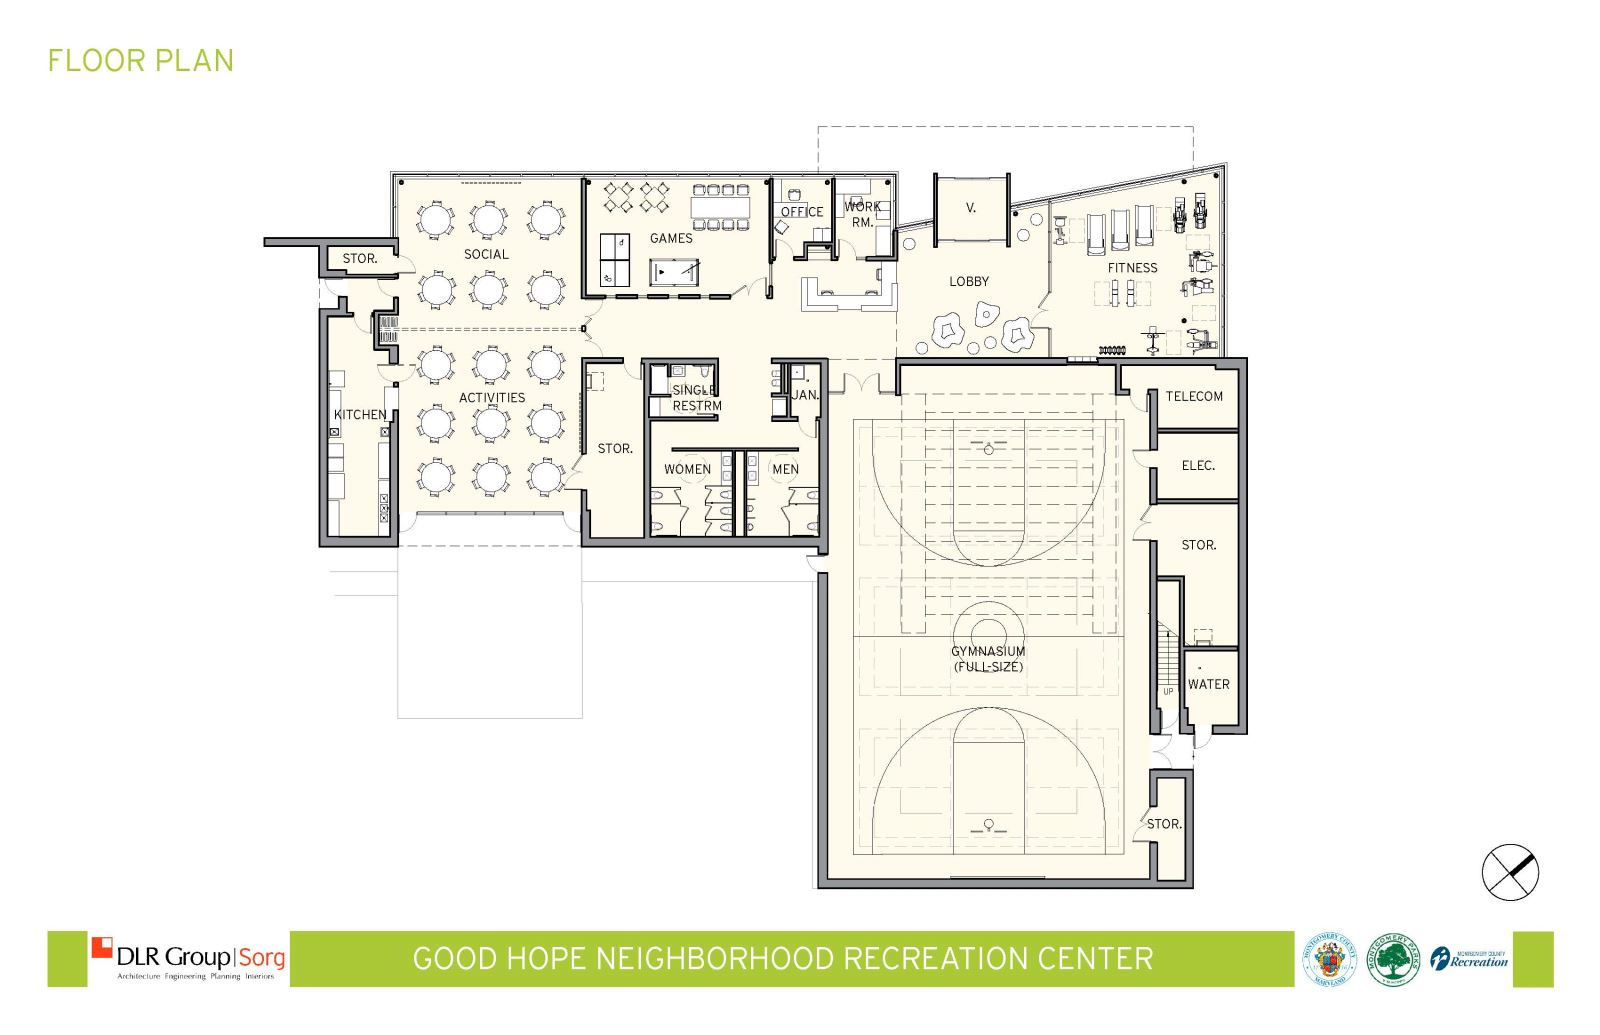 720918 on Recreation Center Building Floor Plan